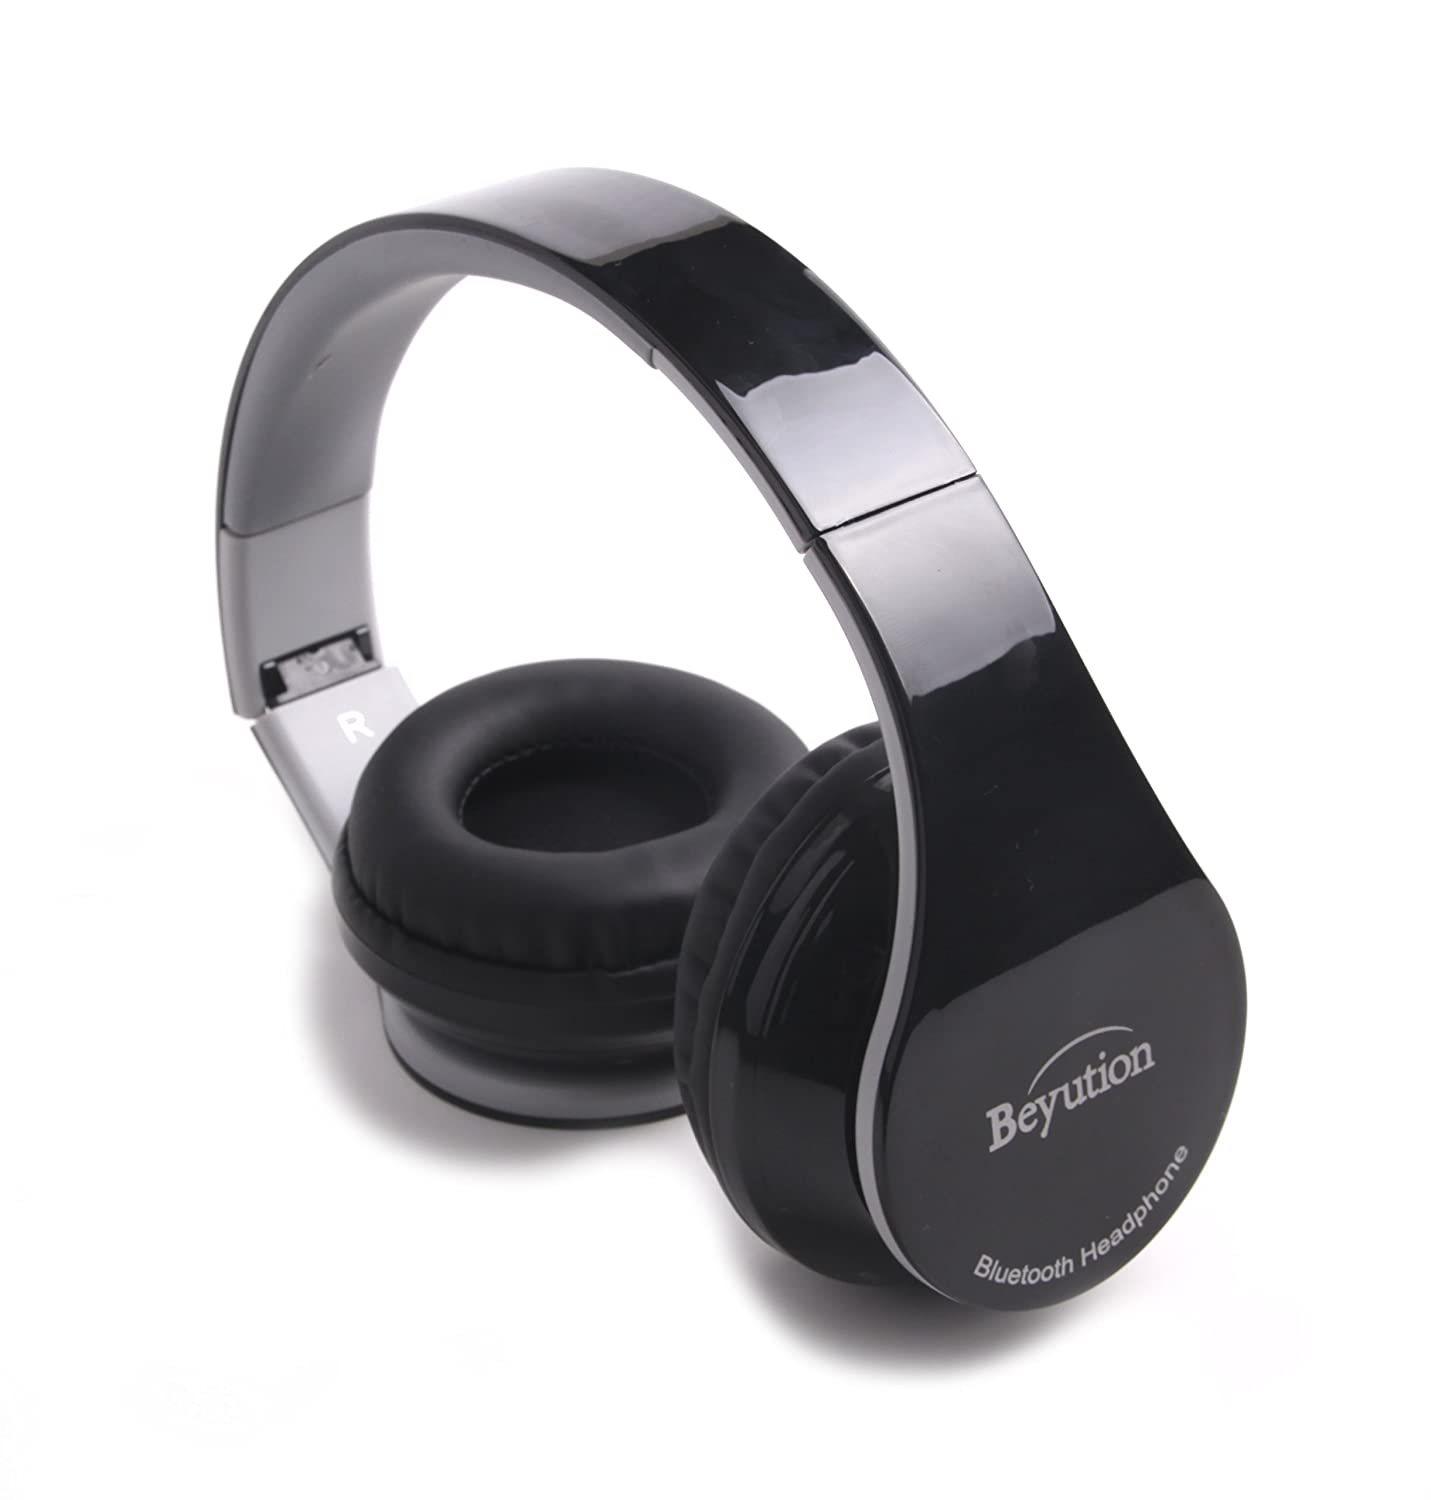 apple bluetooth headphones. amazon.com: beyution smart stereo wireless bluetooth headphone---for apple iphone series and all ipad ipod series; samsung galaxy s4/s3; nook; visual land; headphones